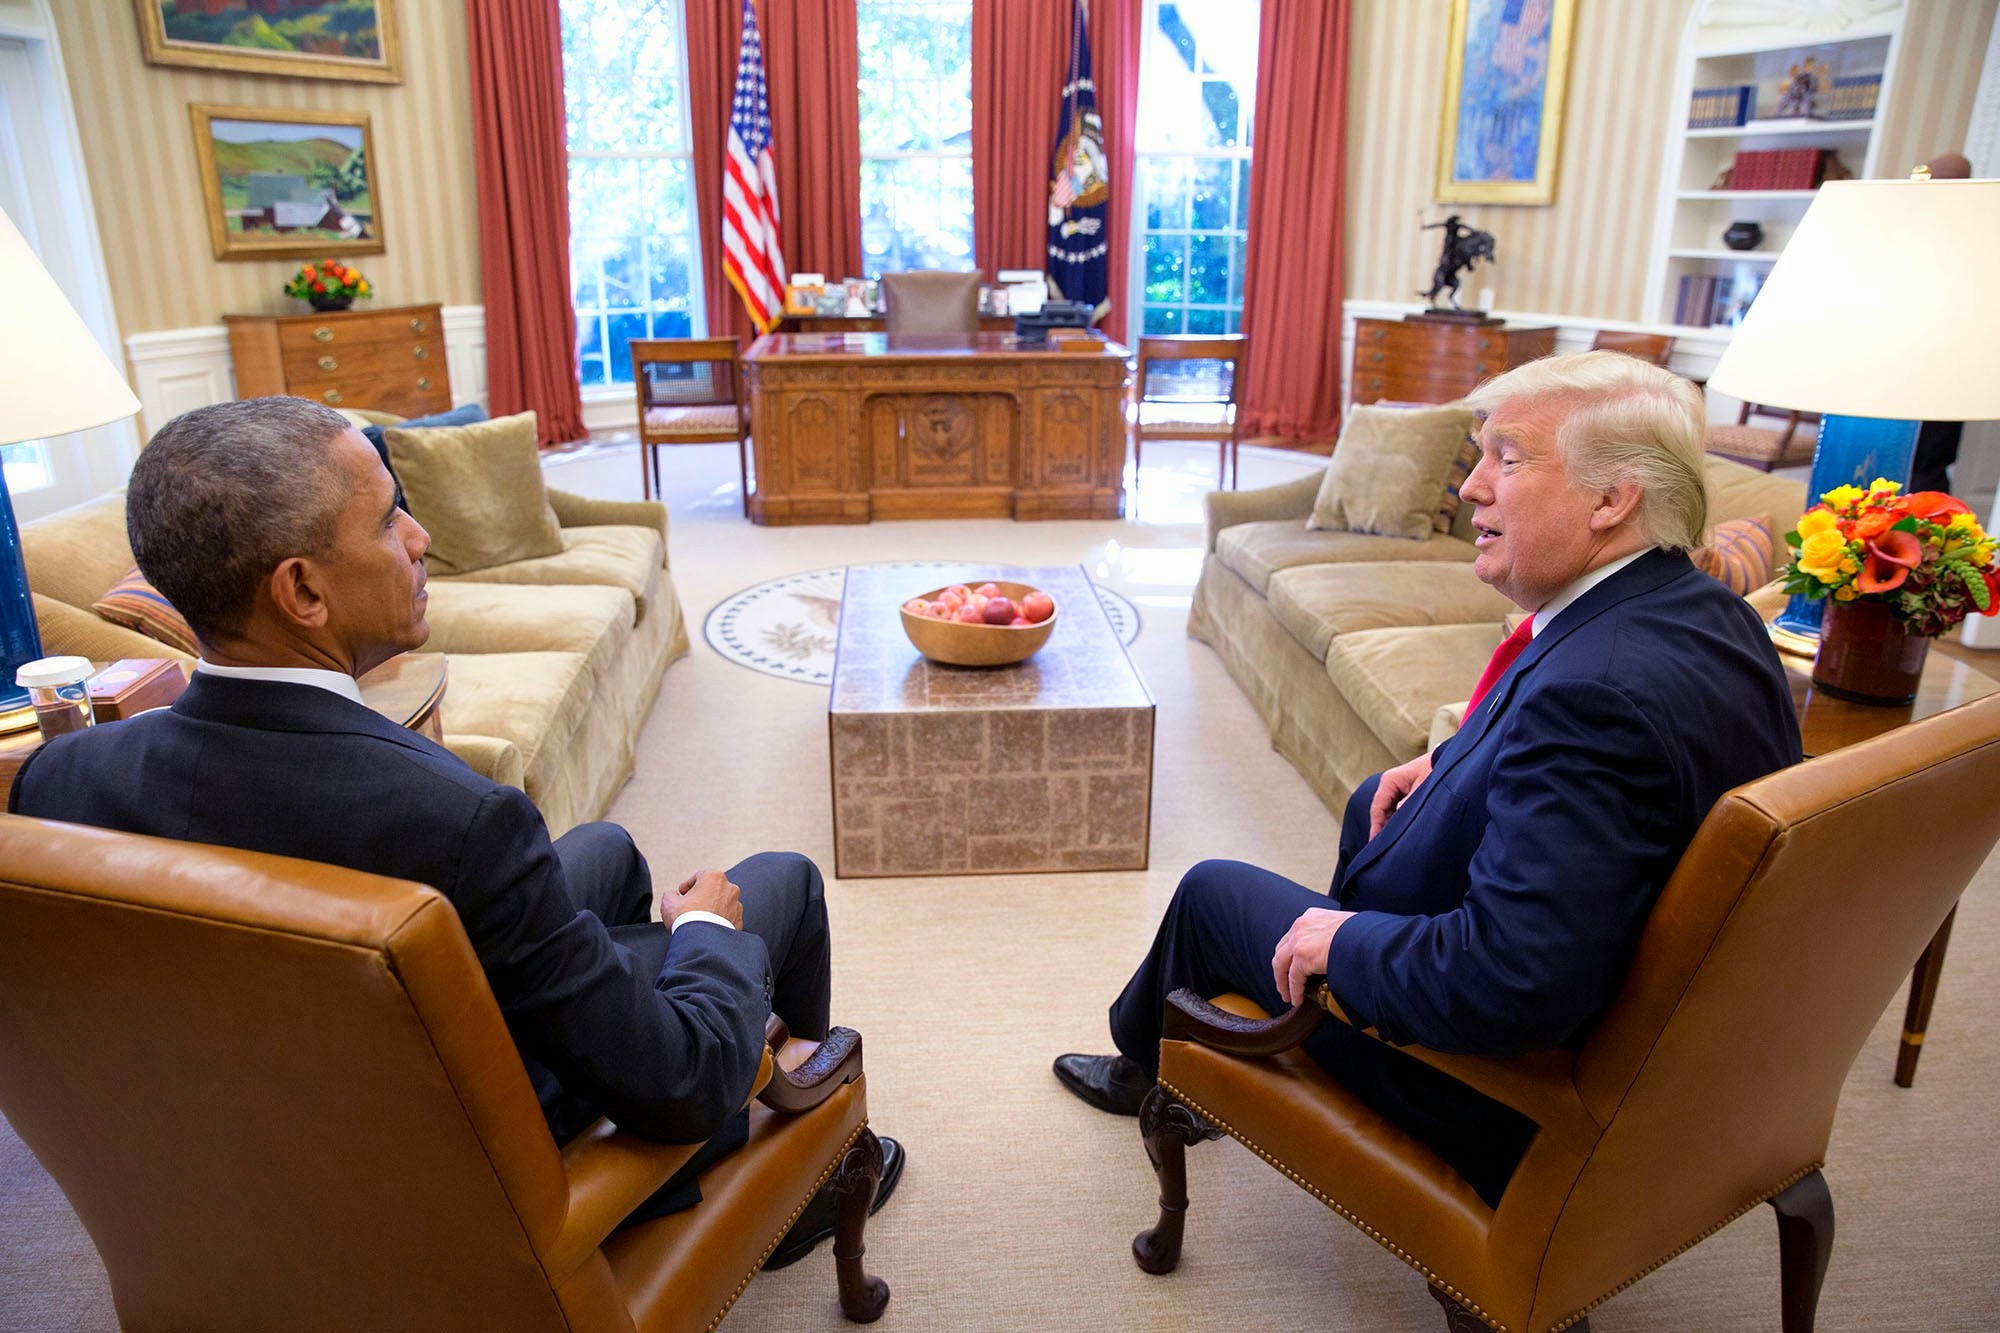 Janus Tête à Tête Sitting President & President Elect, Barack Obama & Donald Trump Squatting Next To Each Other On Arm Chairs In The Oval Office On November 10th 2016. (31196987133)